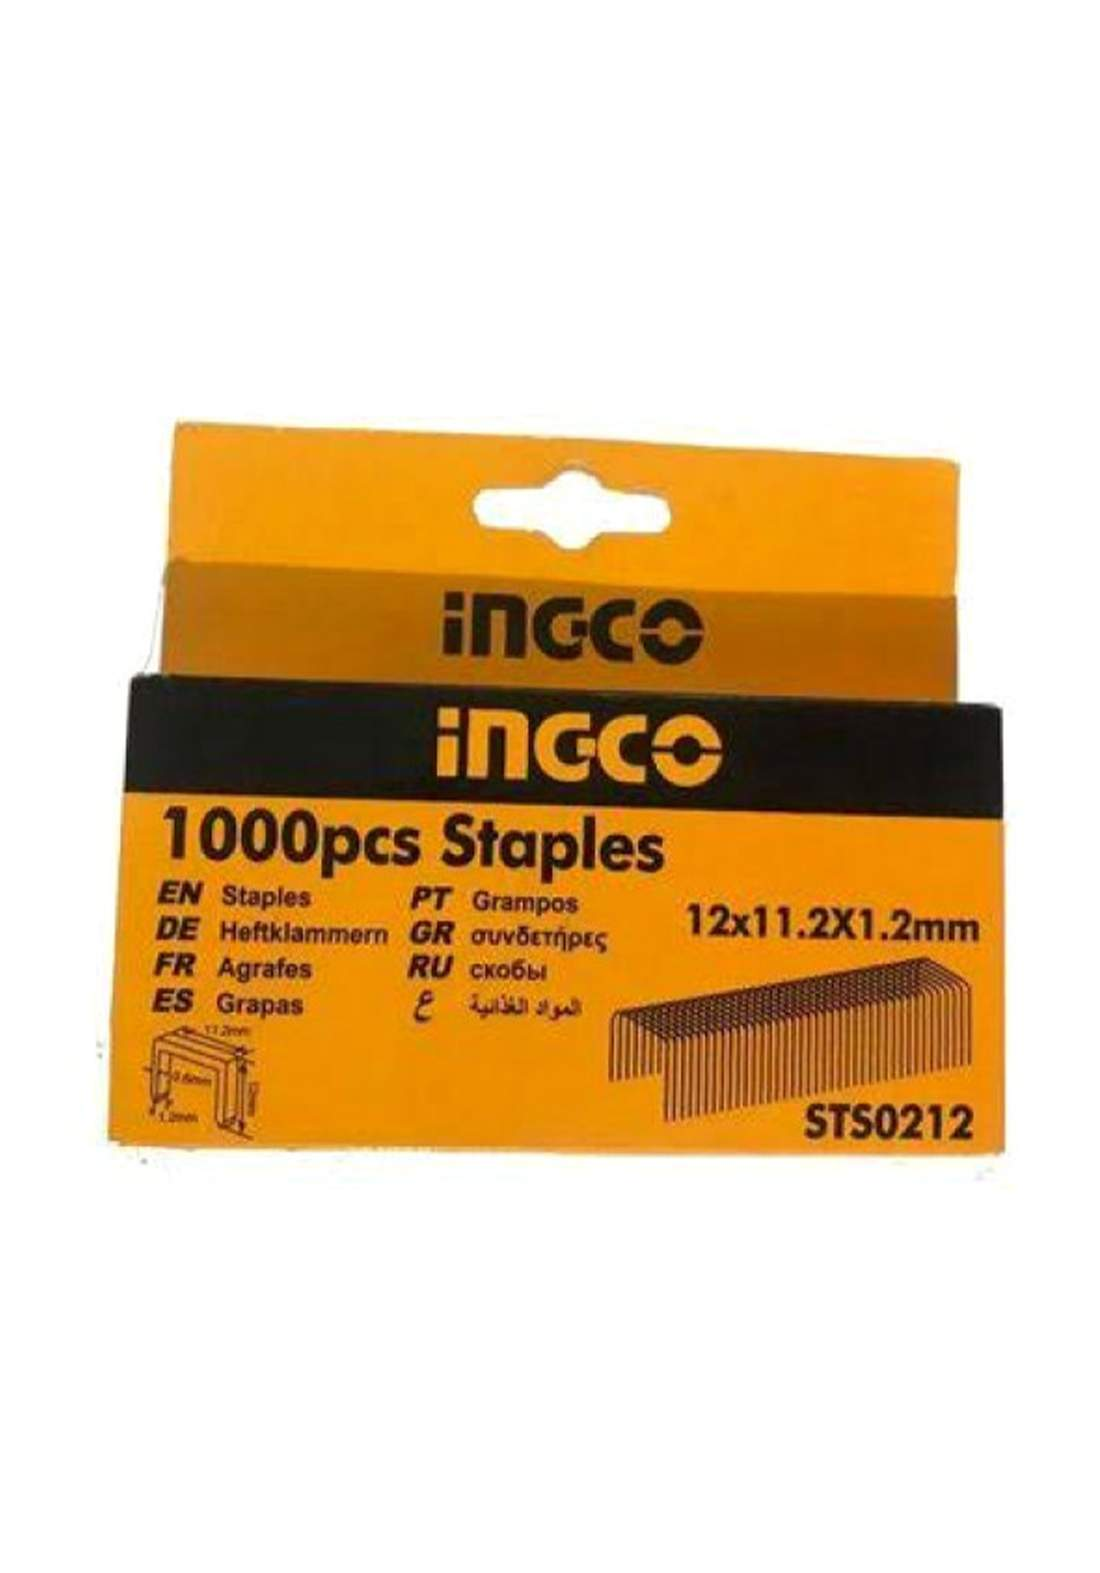 Ingco STS0212 Staples - 12mm (width: 0.7mm) -1000 Pieces